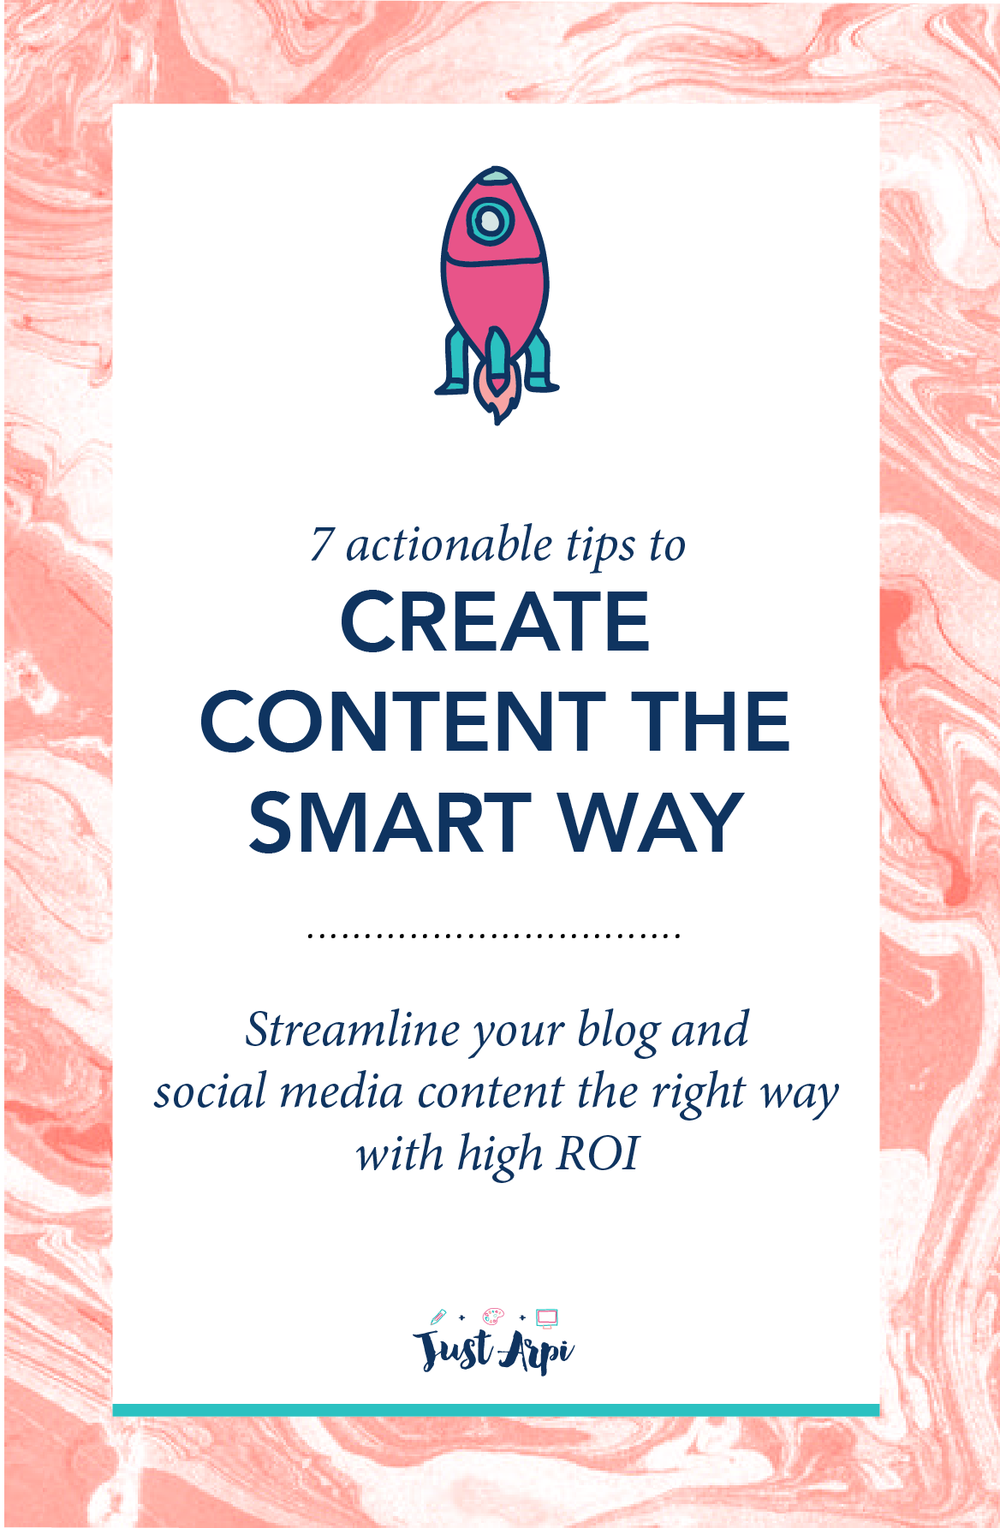 7 actionable tips to create content the smart way- In the online world, you got to make smart decisions to keep you moving forward by constantly creating content and being human at the same time. At the beginning of my online business career, I have picked up a few tips and made them a part of my online content strategy. Even though content marketing does an amazing job at educating your audience, give your brand awareness and gets your potential buyer close to you, it is smart content that actually converts them into leads and eventually leads them to buying from you.